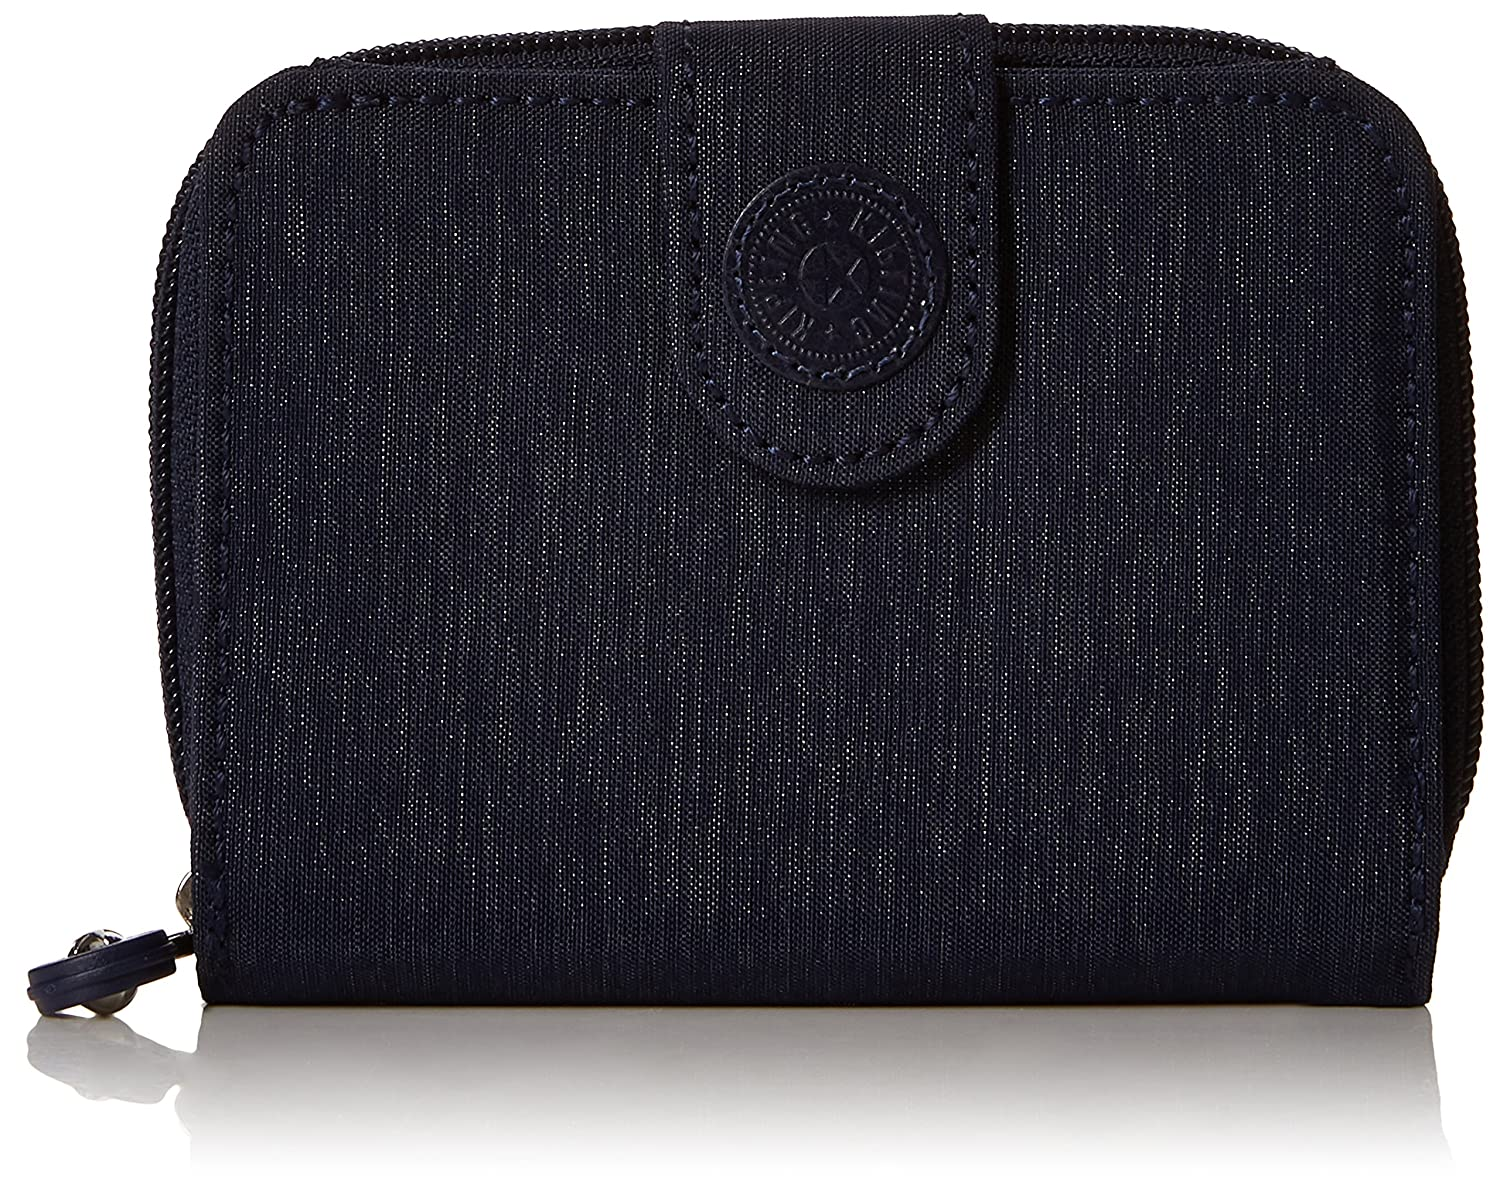 Kipling New Money, Billetera para Mujer, 9.5x12.5x3 cm